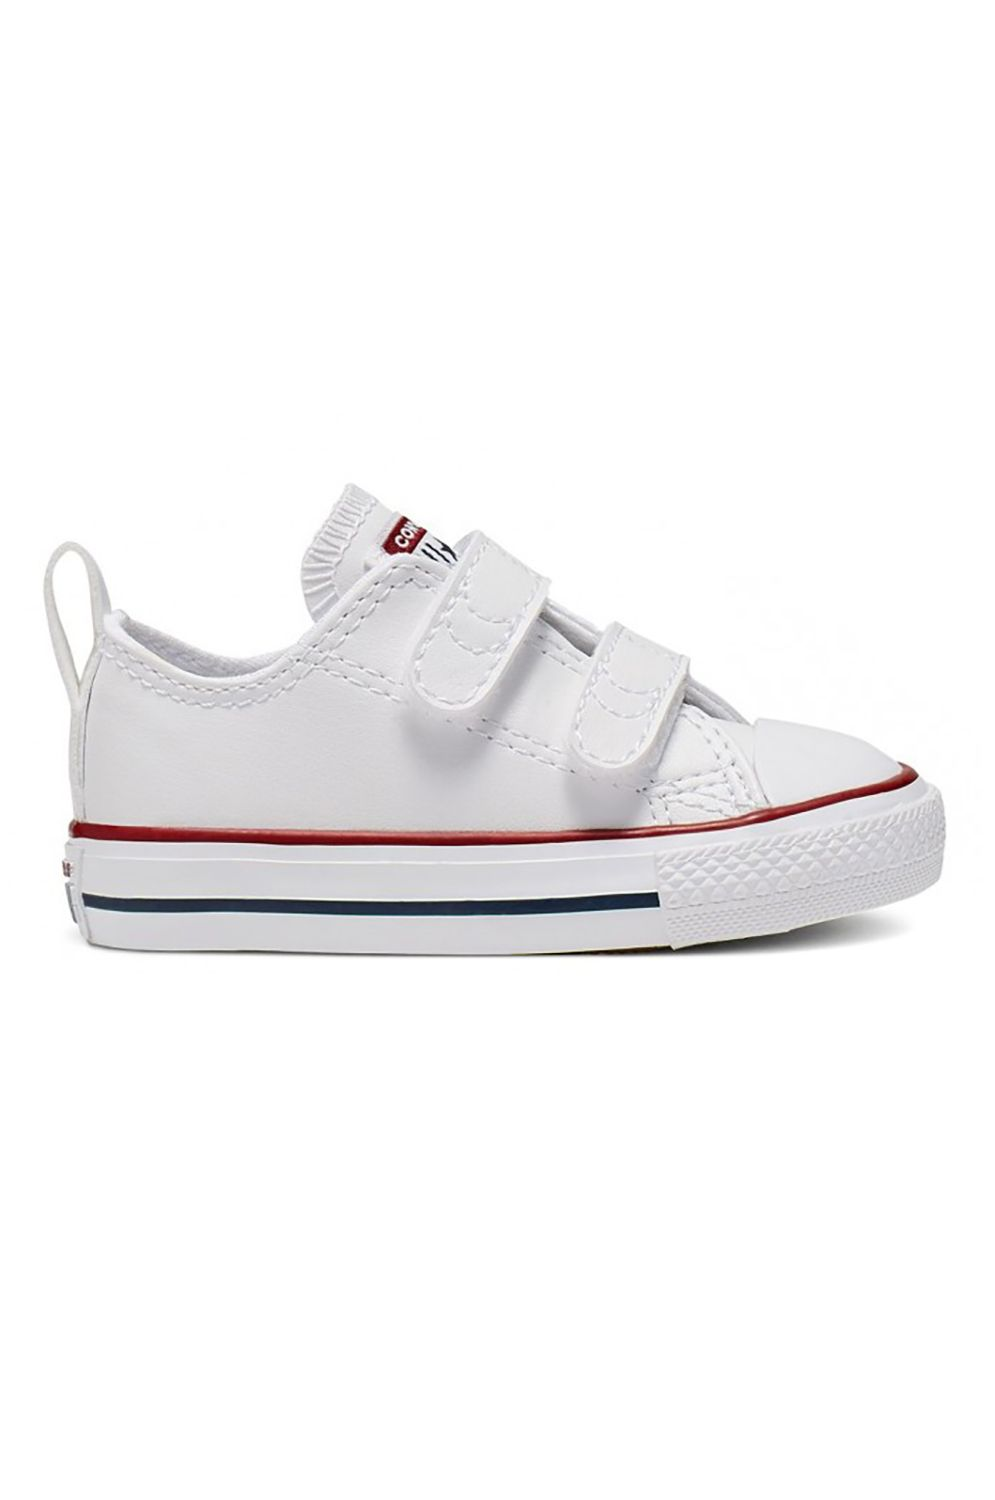 Converse Shoes CHUCK TAYLOR ALL STAR 2V OX White